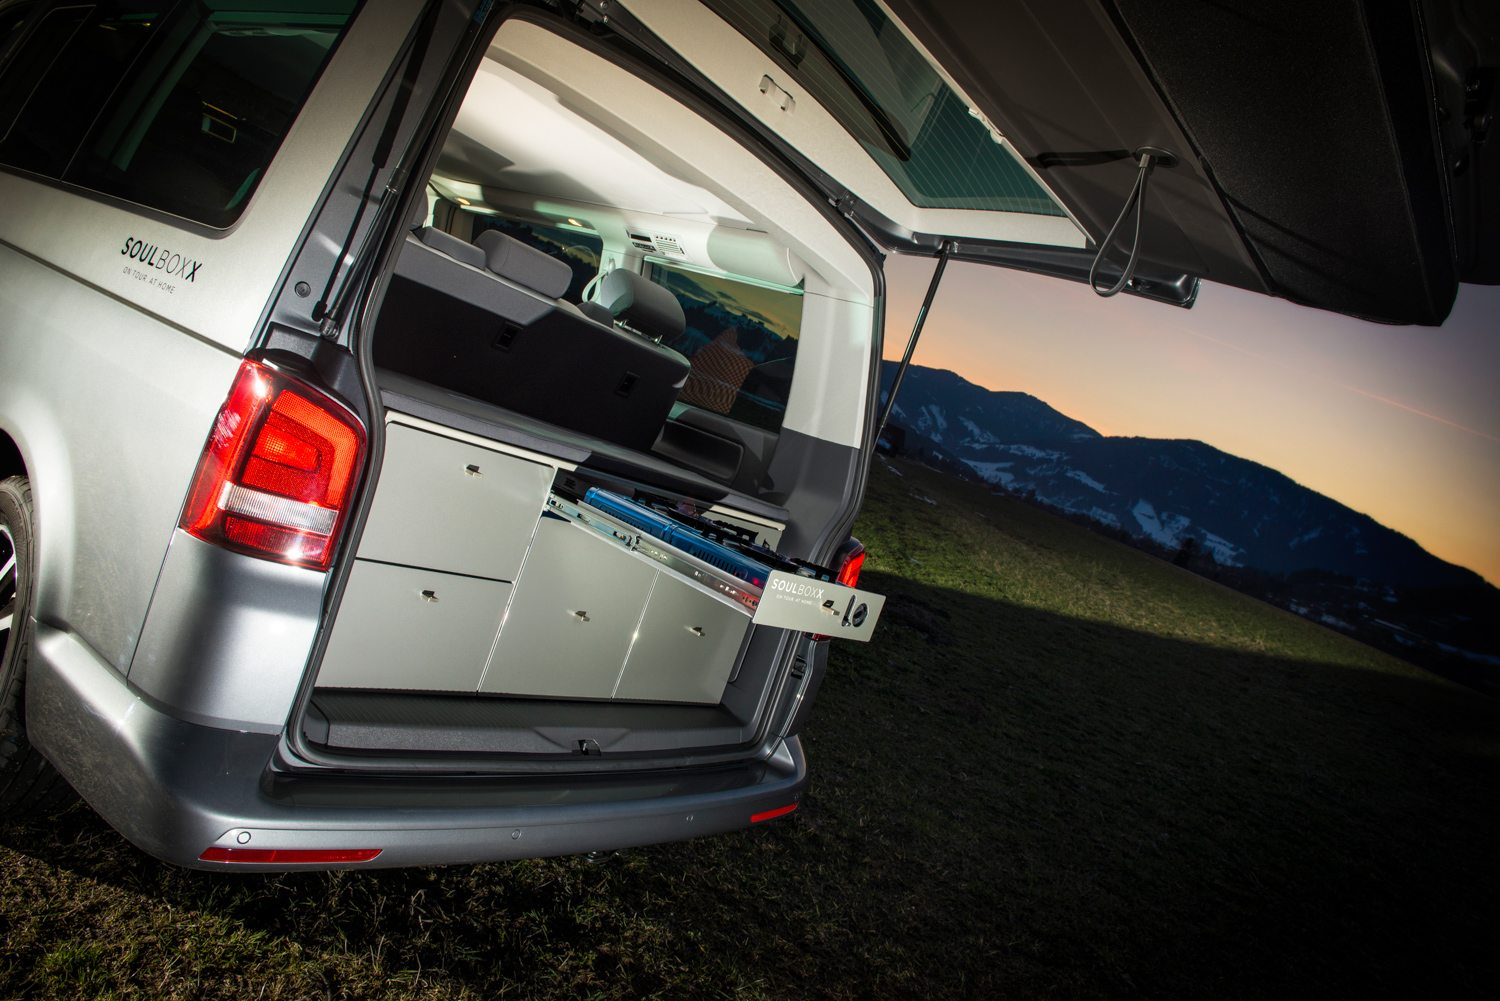 VW California, Soulboxx Edition, Travel Photographer, Land Salzburg, Lorenz Masser